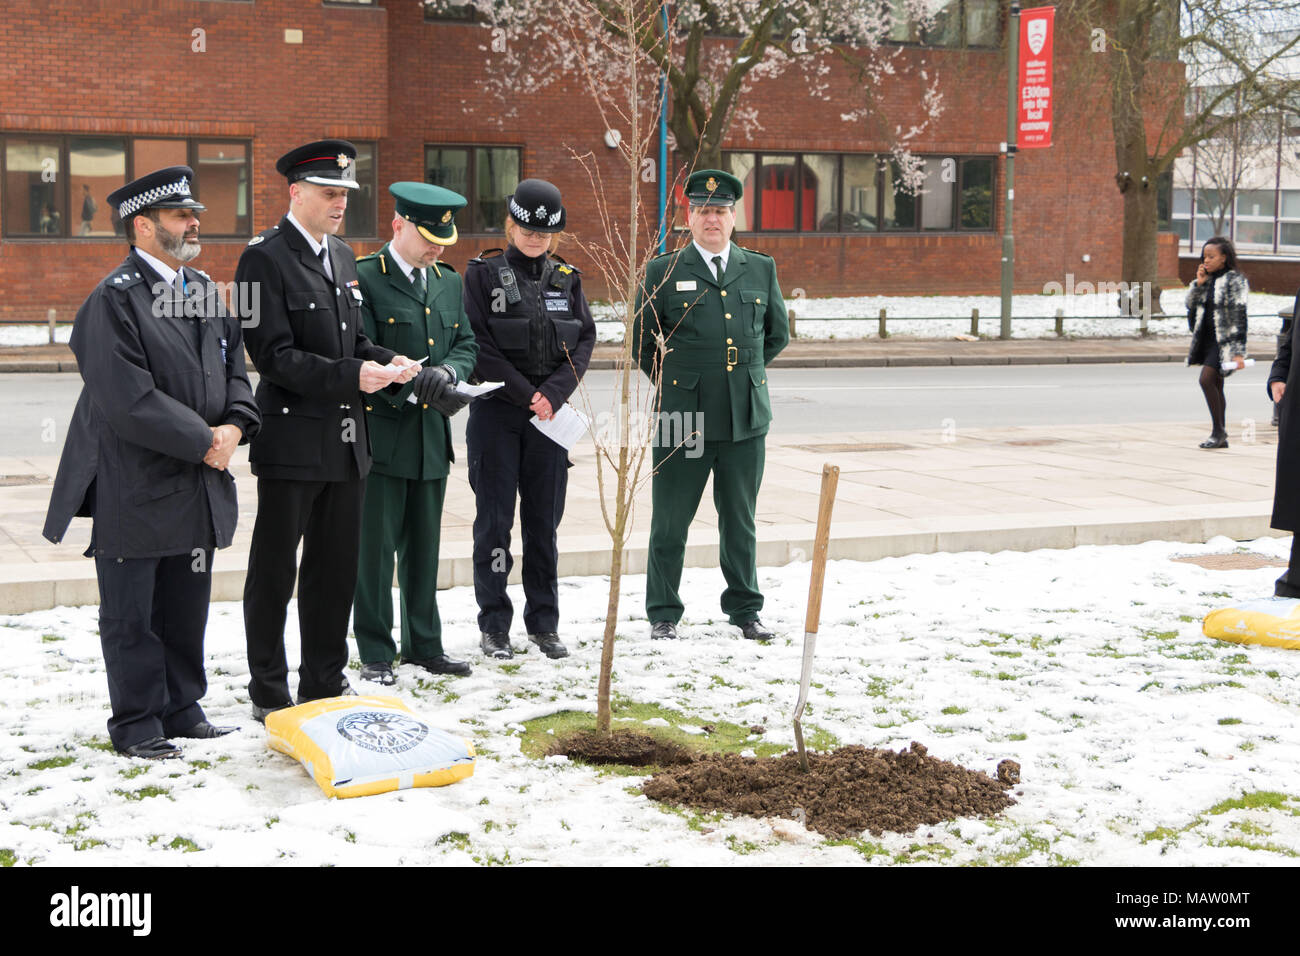 Members of Barnet's emergency services at multi faith tree planting ceremony at Middlesex University - Stock Image